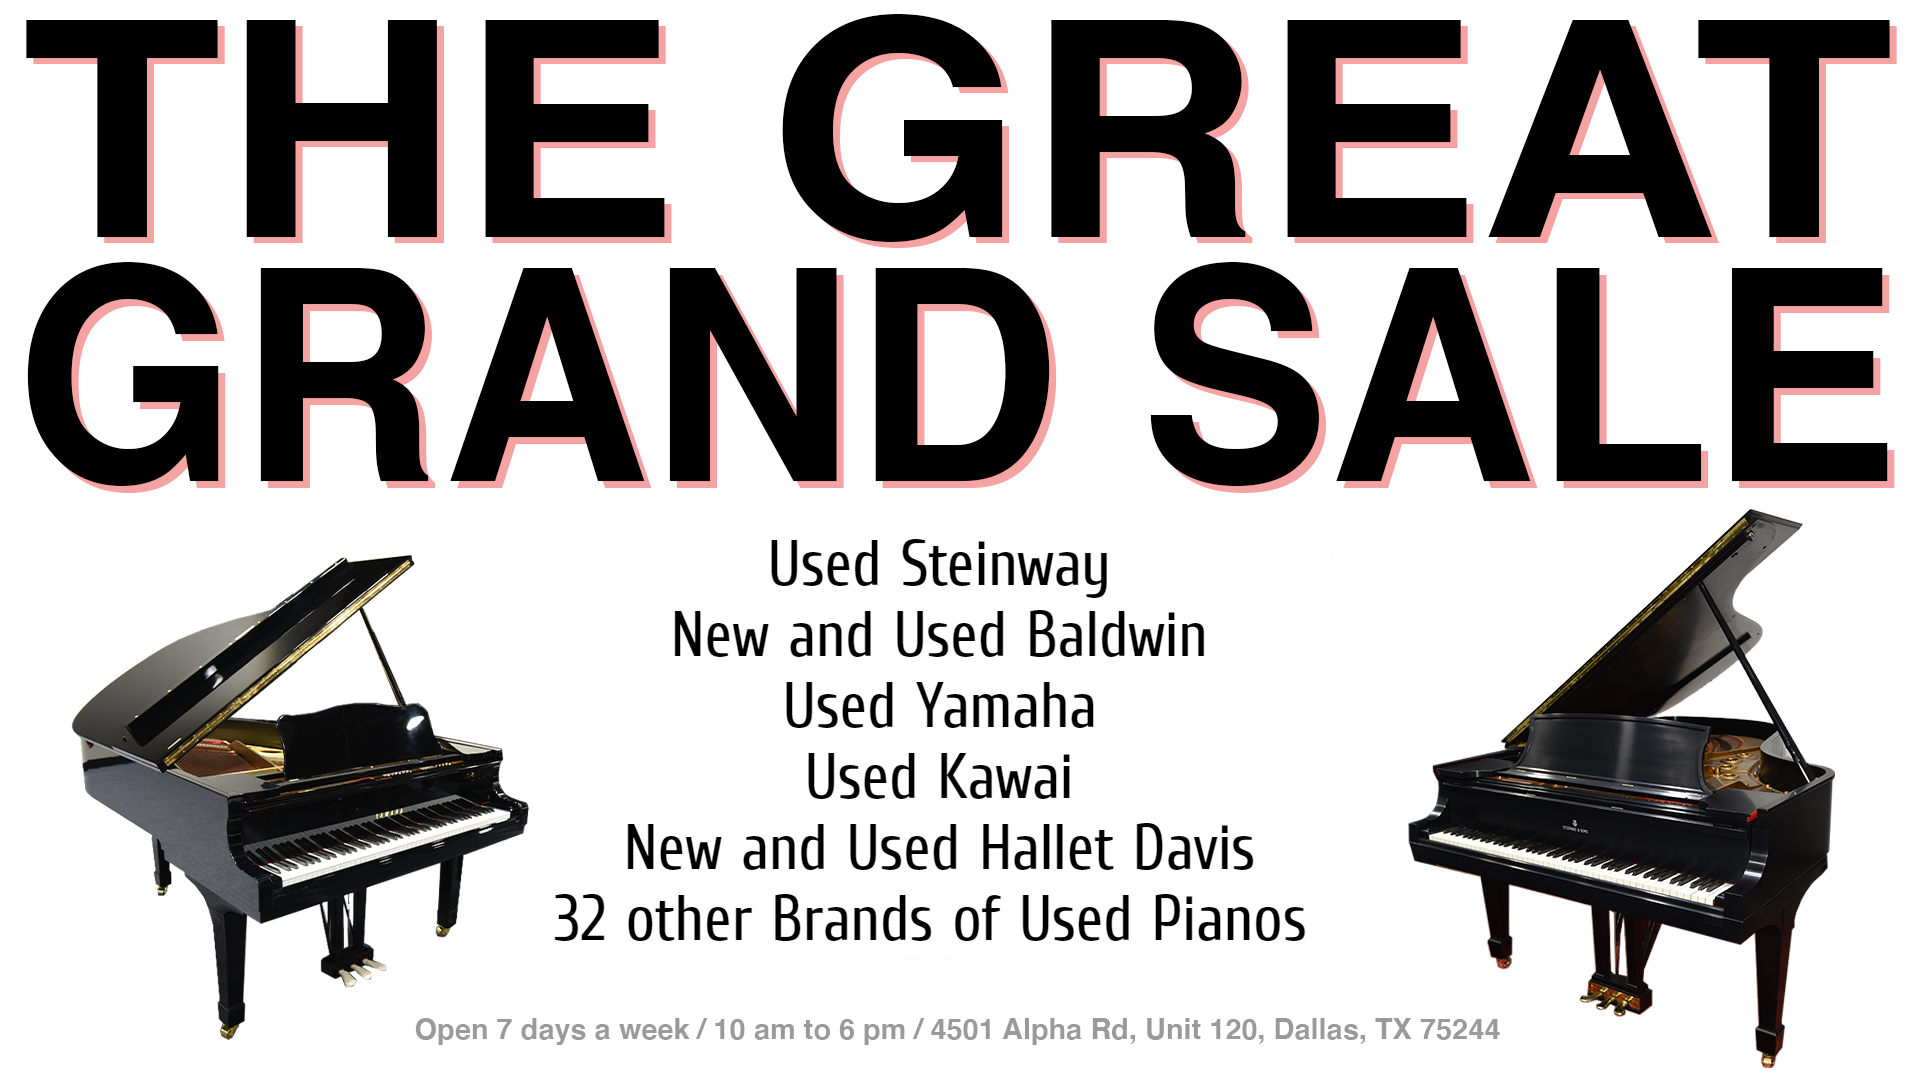 Largest Piano Dealer in Texas